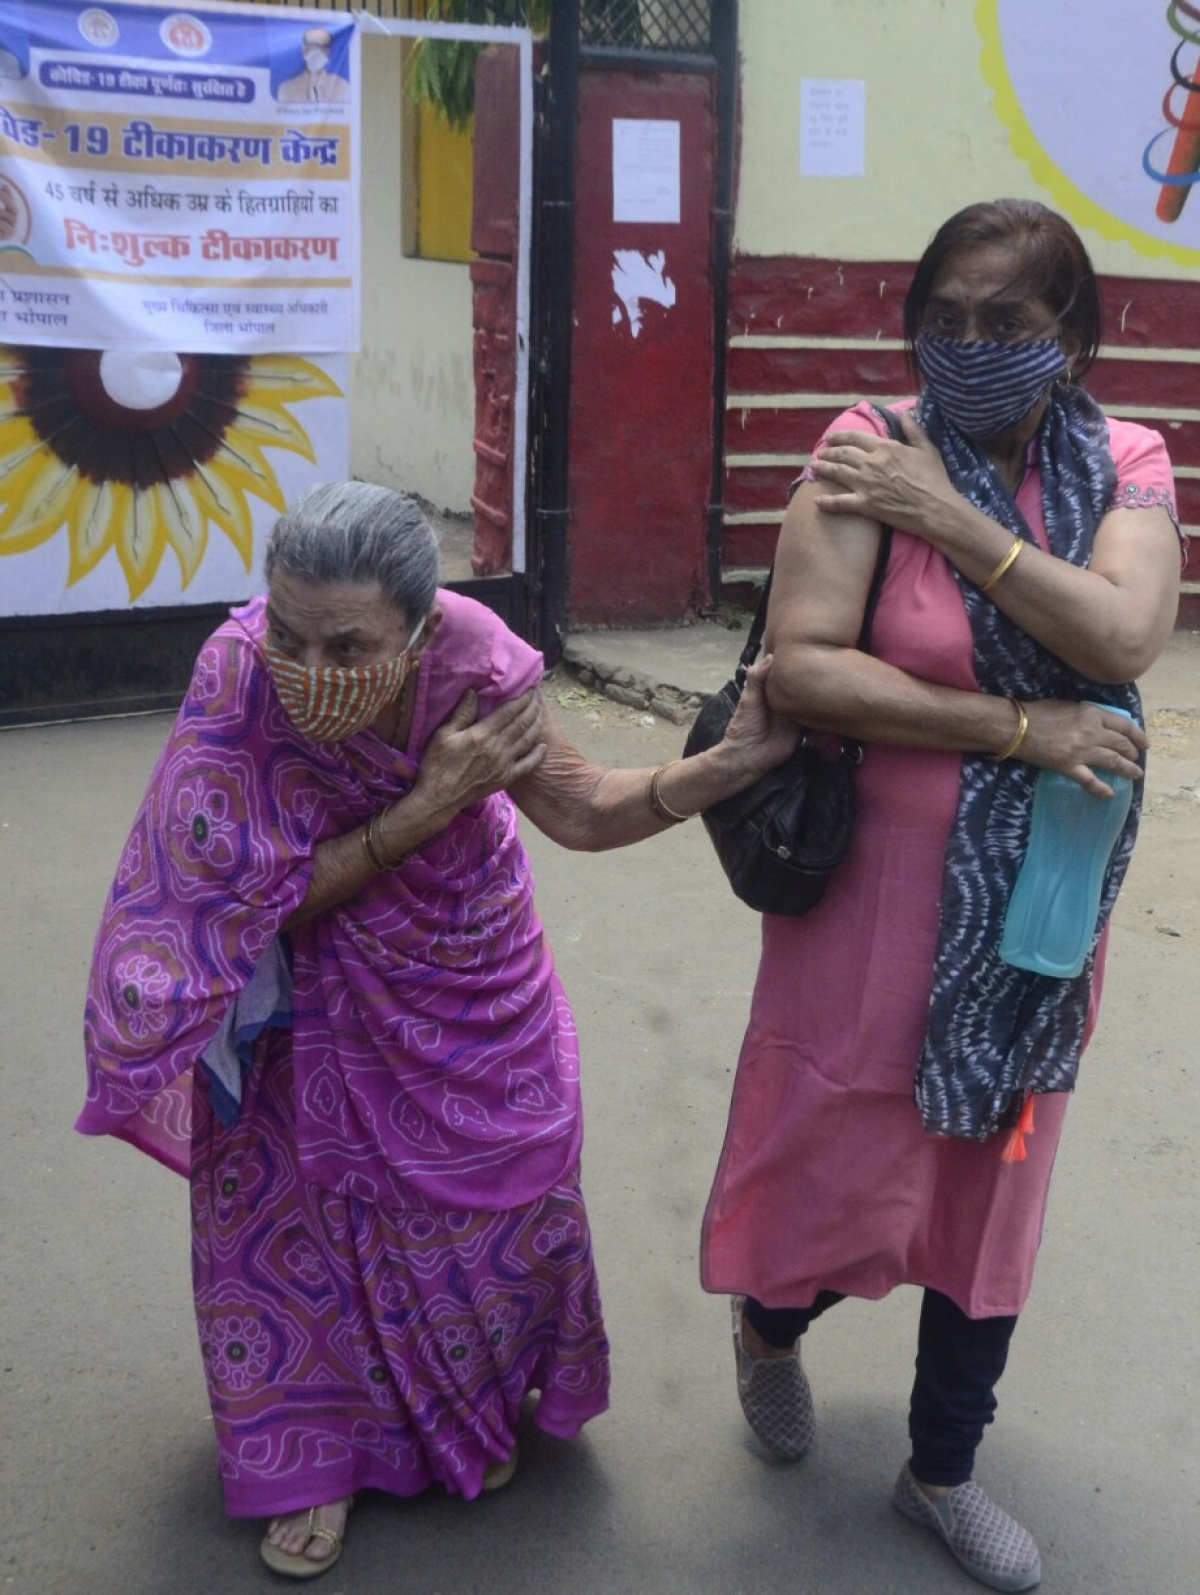 Bhopal: State's vaccination drive moves at a snail's pace, long queues seen outside all corona vaccine centers